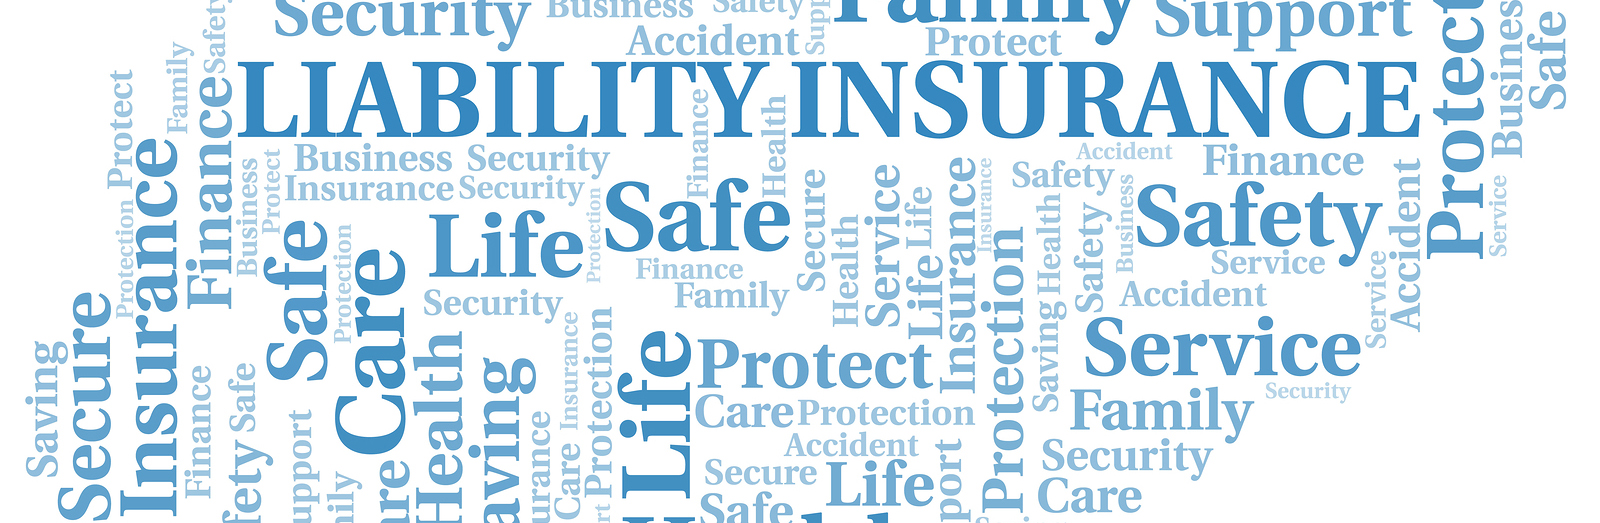 Personal Liability Images